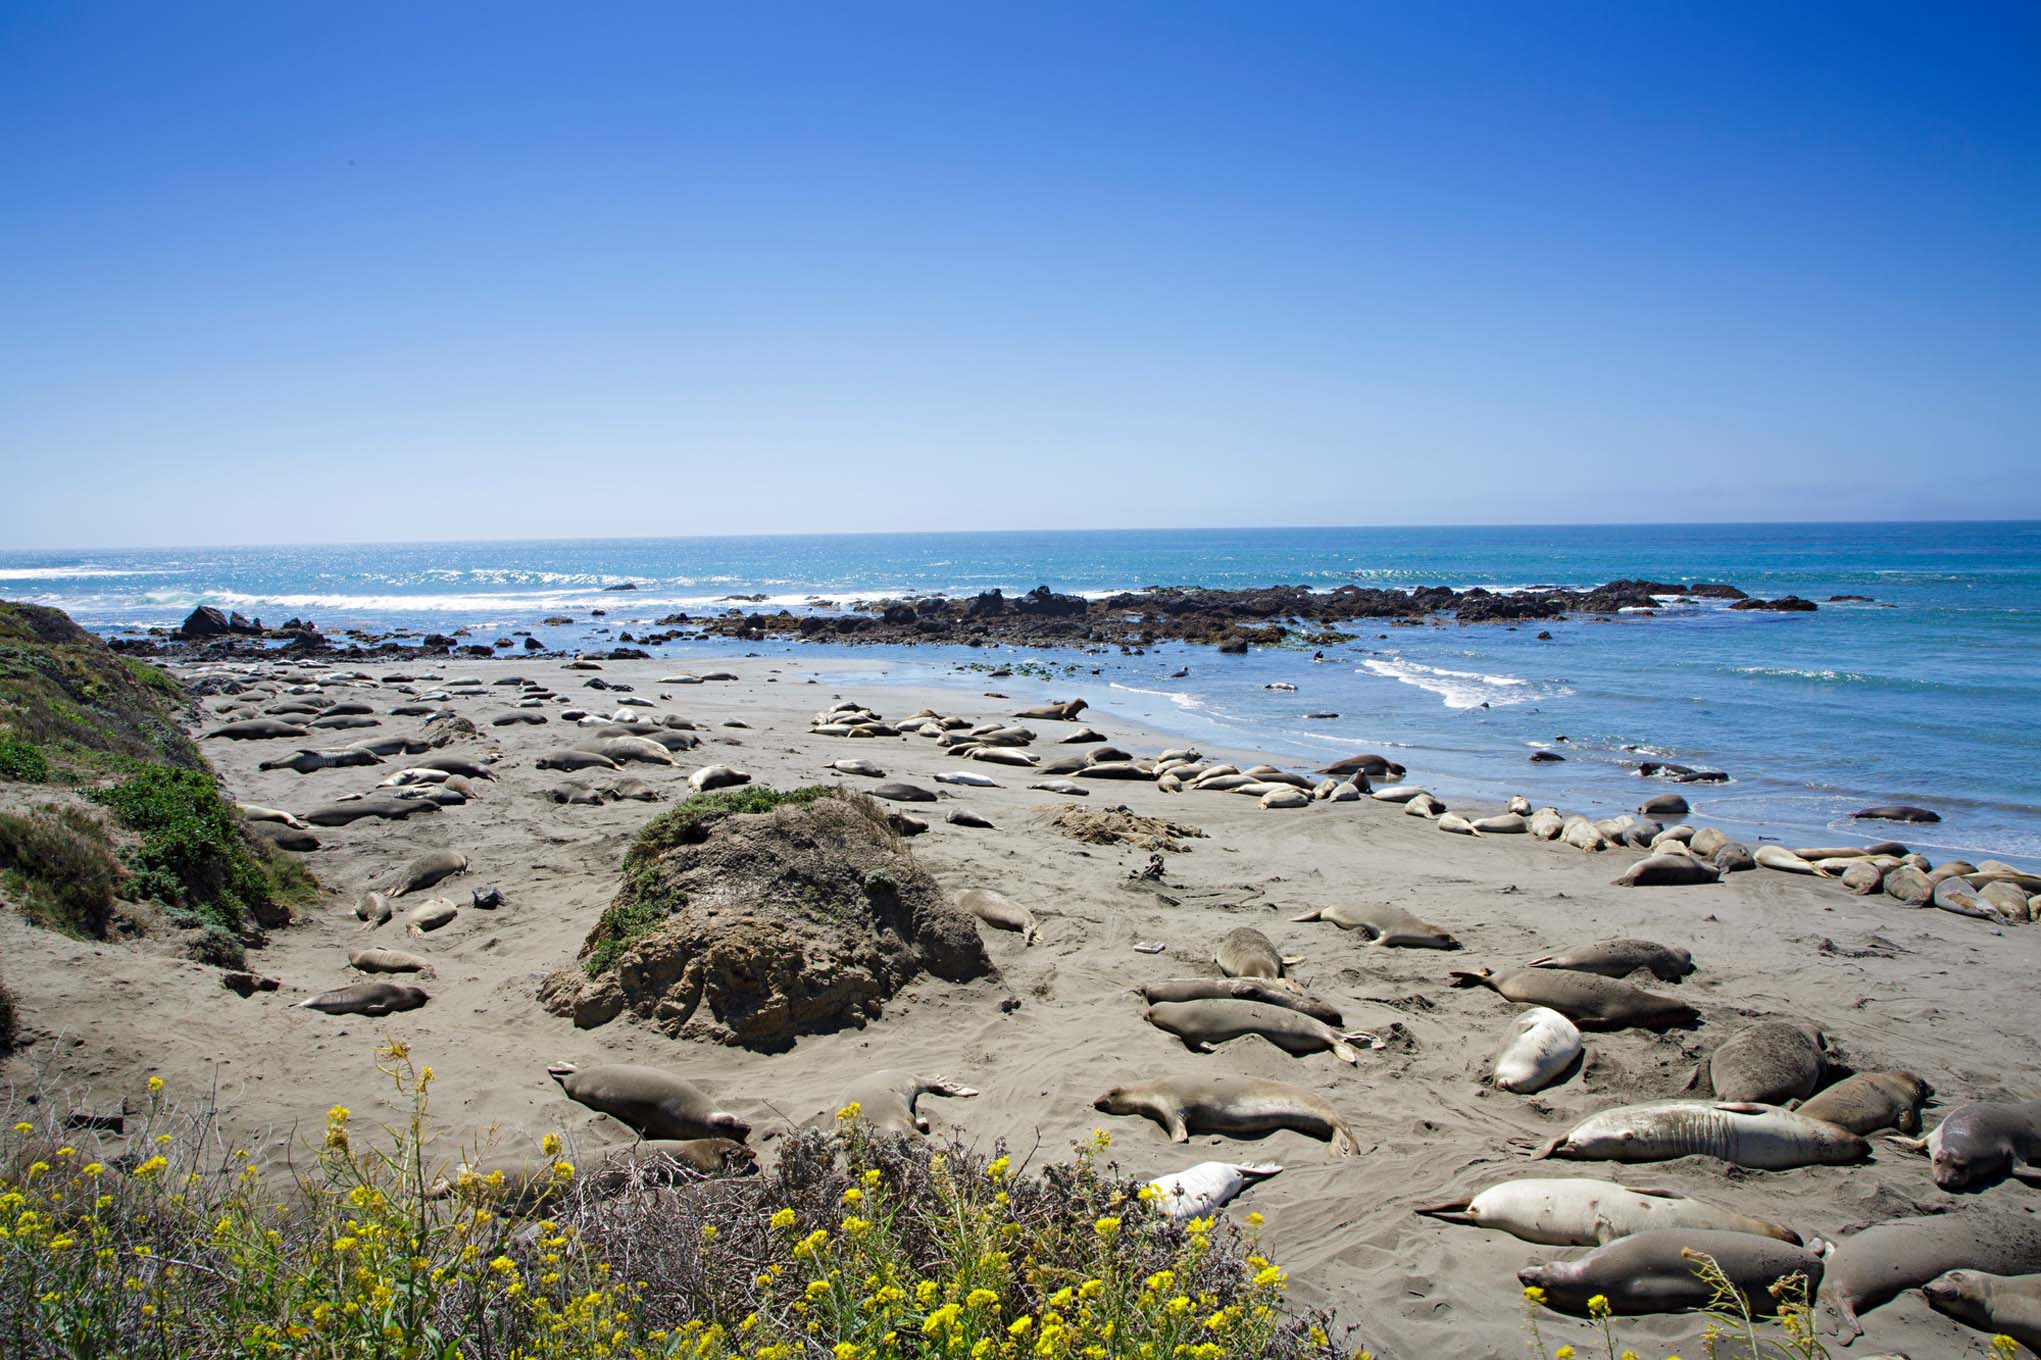 The next day we, set out early to drive Highway 1 to Monterey knowing we would be stopping often for photo ops and exploring. Just outside San Simeon, at the Piedras Blancas Elephant Seal Rookery, volunteers explained that they come to shore this time of the year to molt and breed.